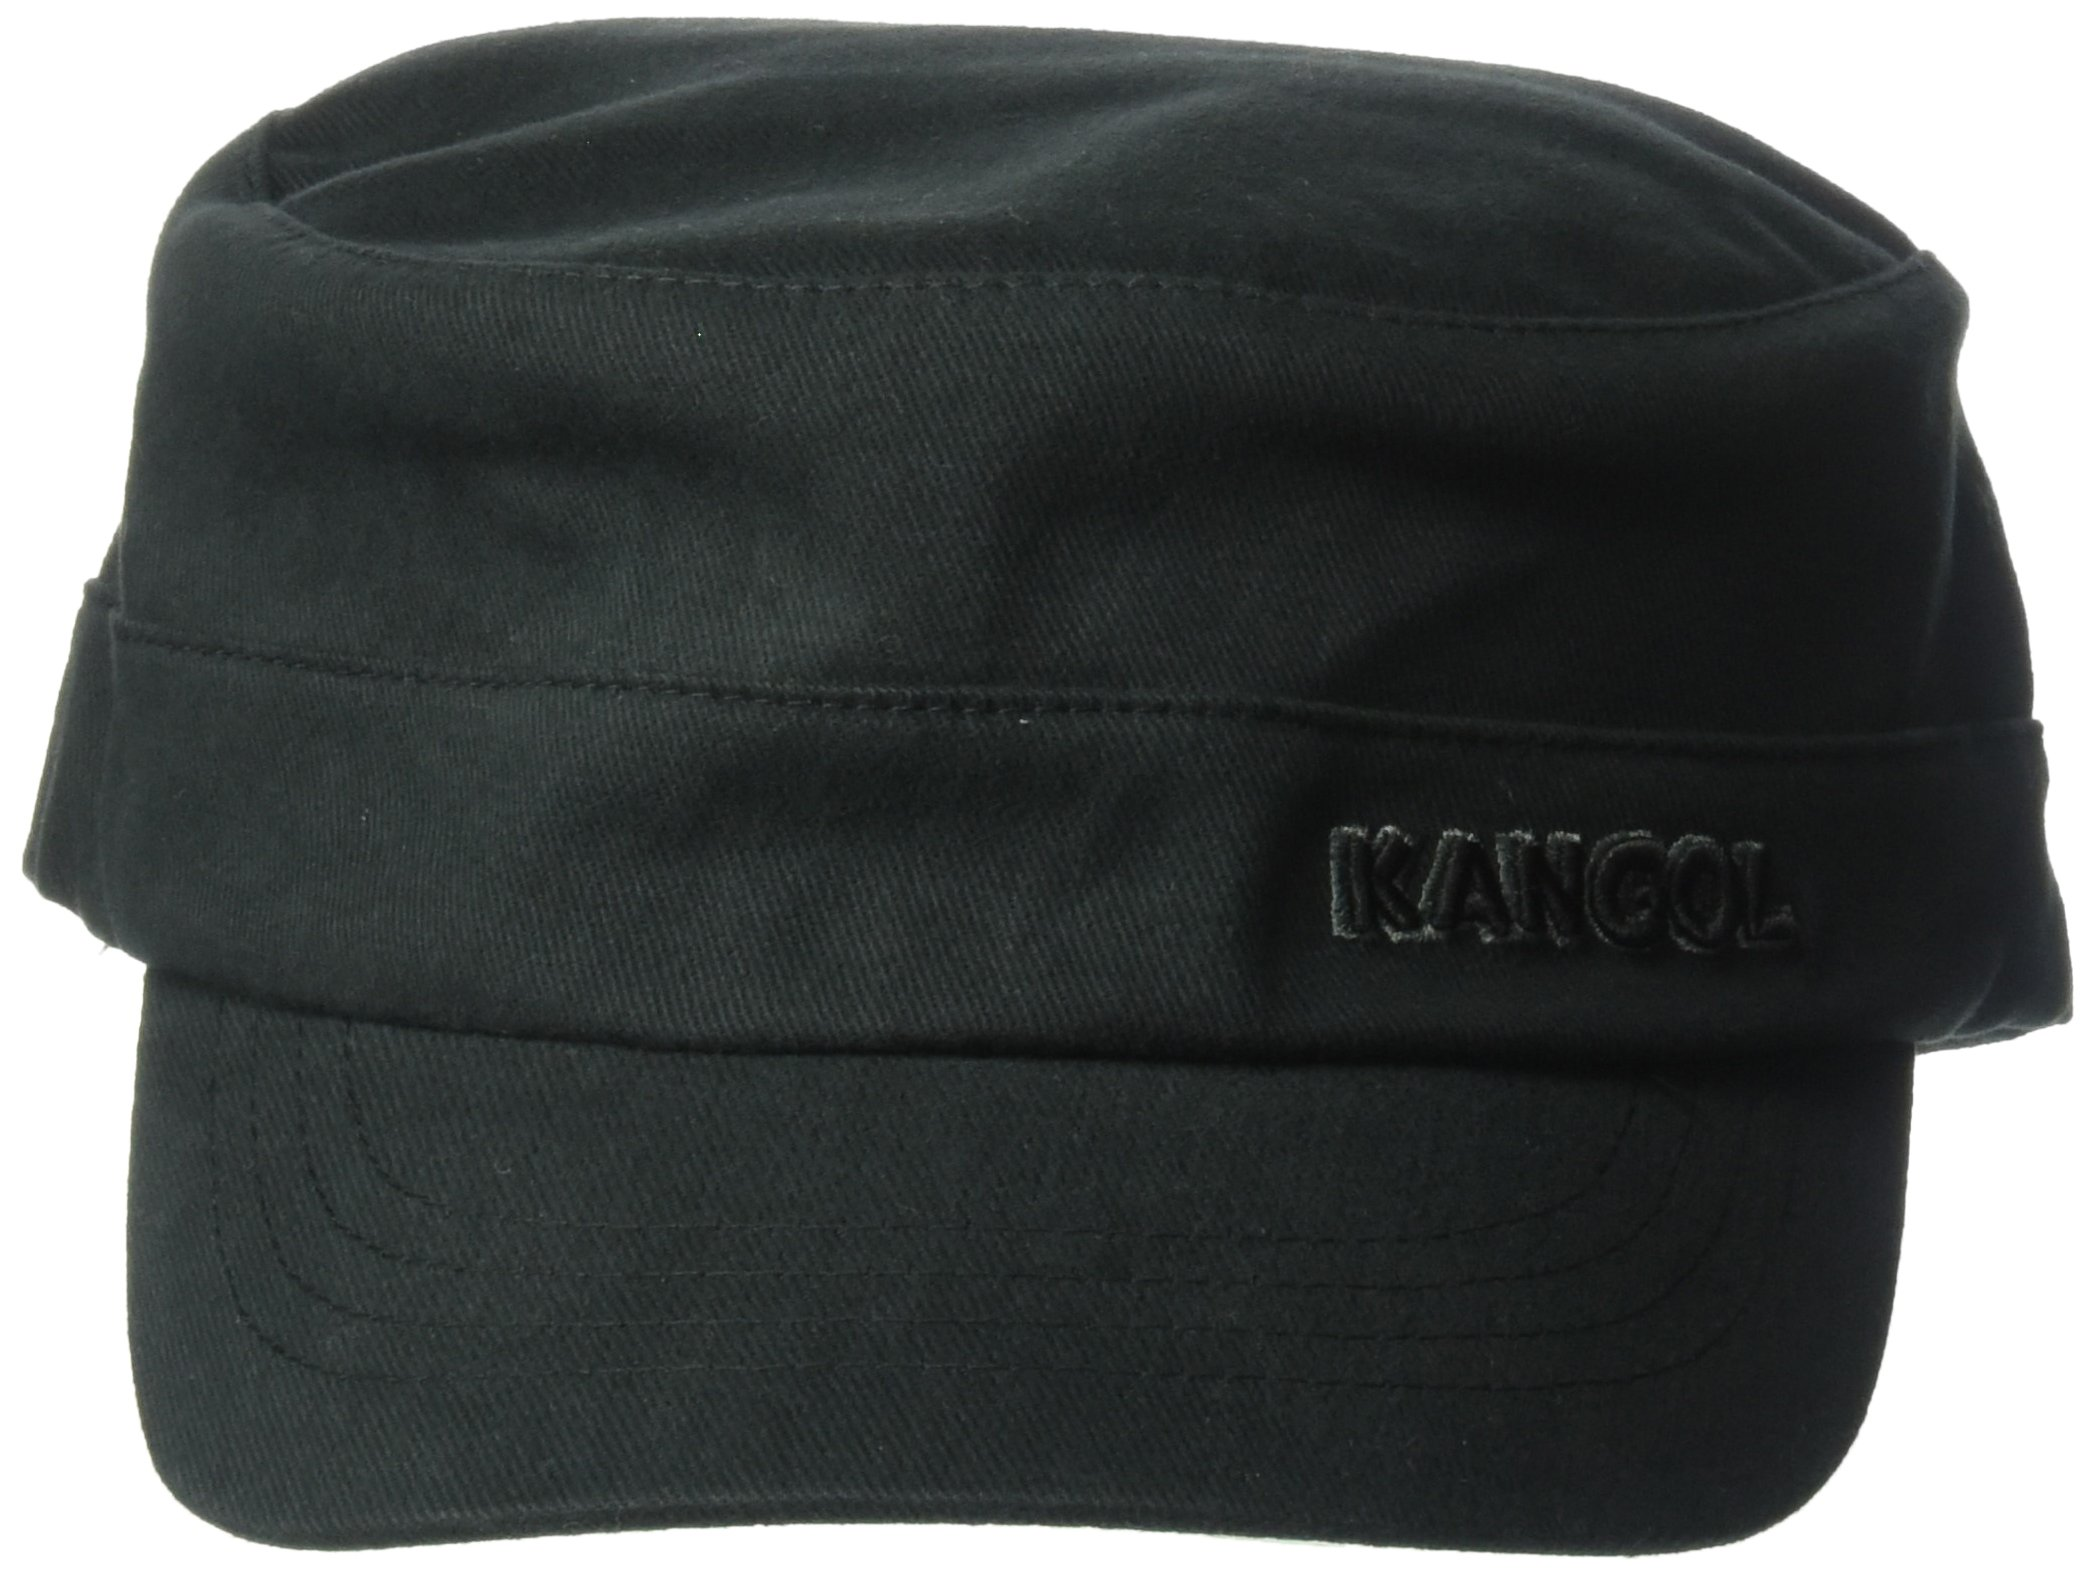 Kangol Cotton Twill Army Cap Hat, black, XXL